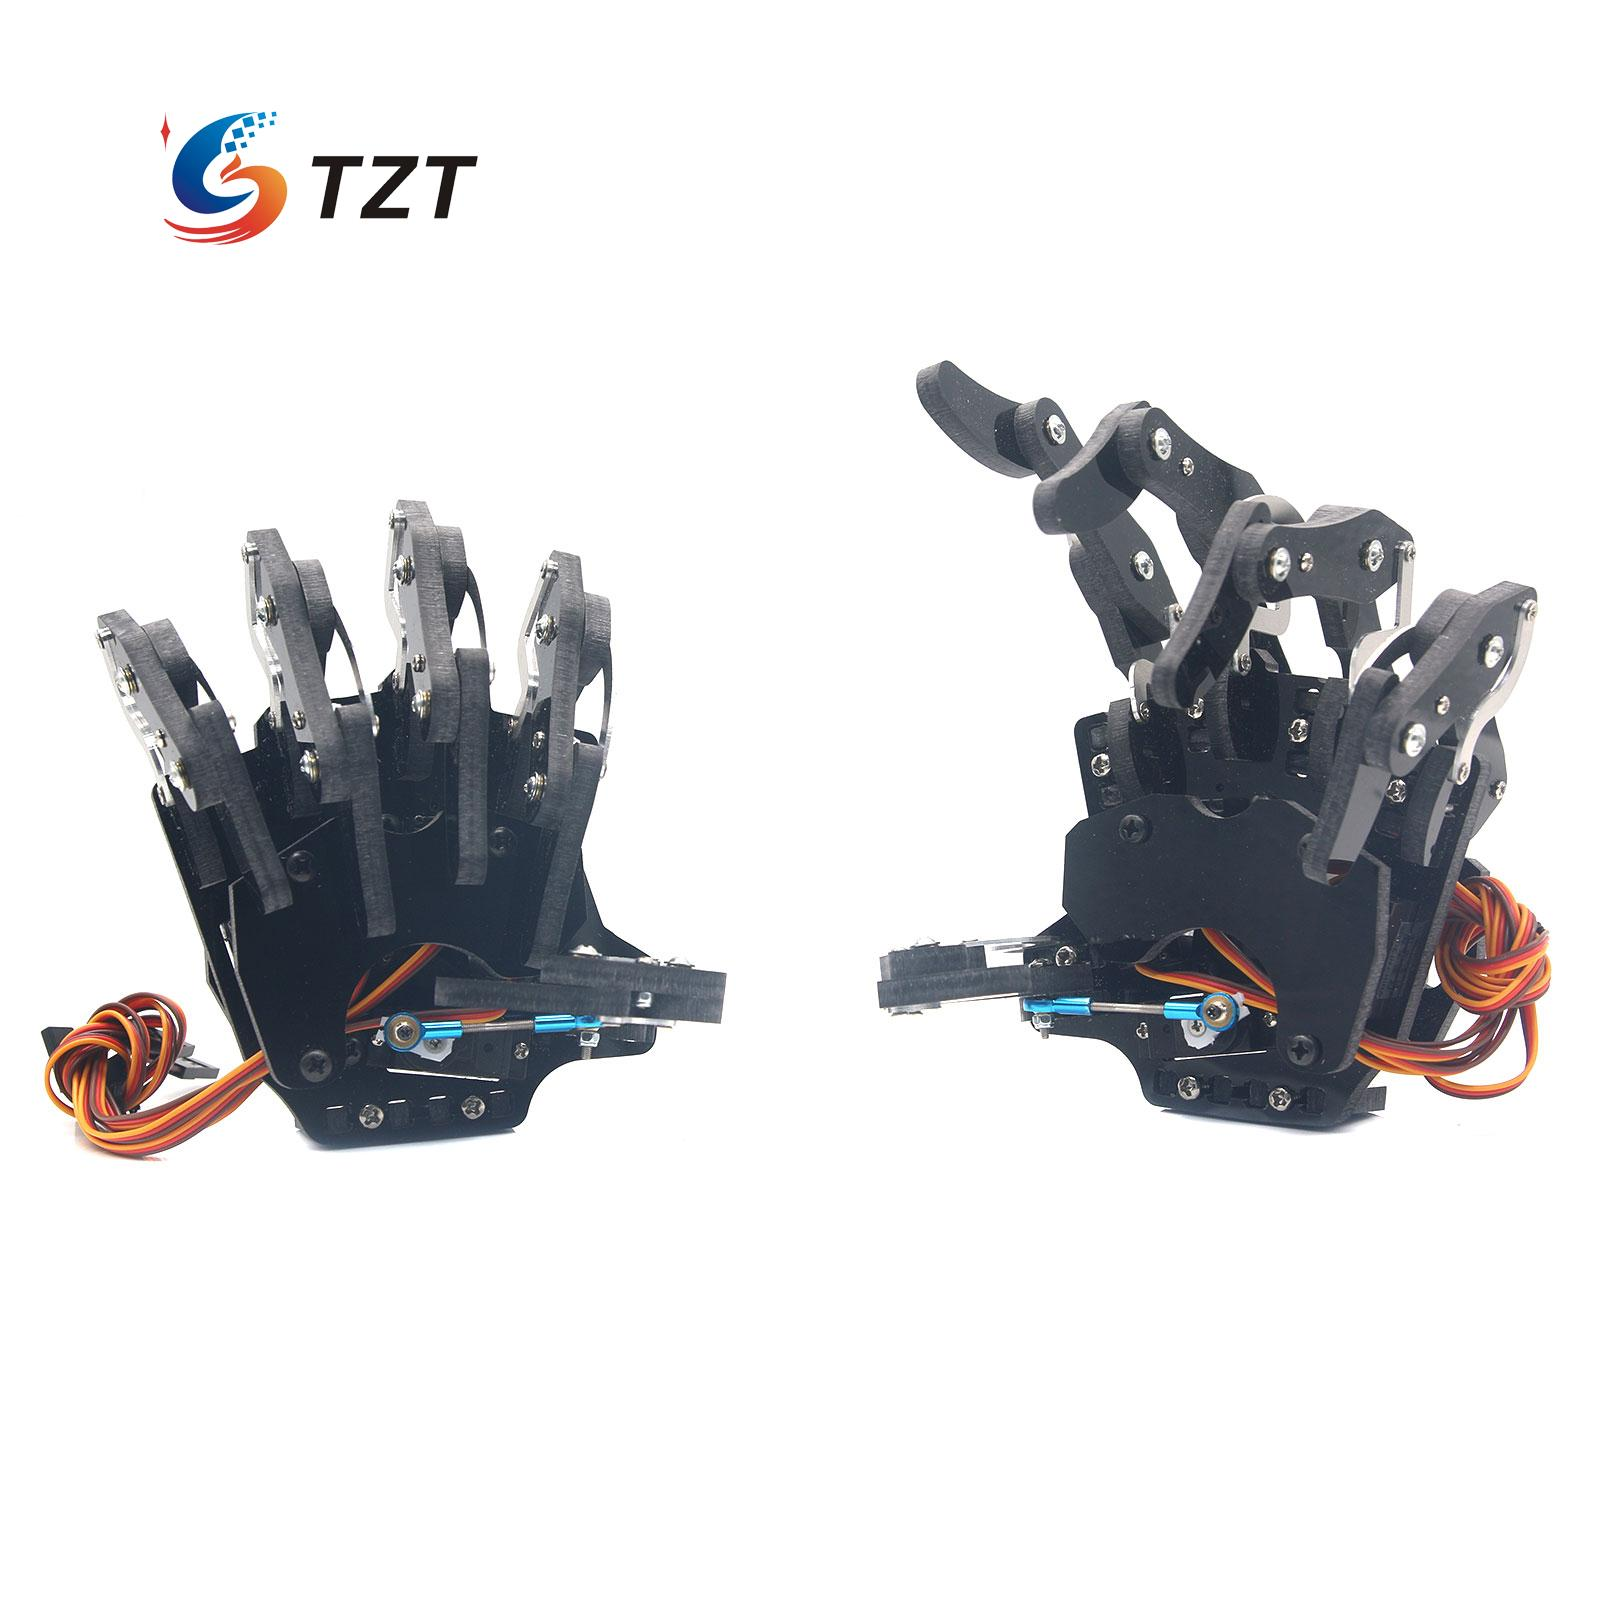 Mechanical Claw Clamper Gripper Arm Five Fingers Right & Left Hand with Servos for Robot DIY Assembled new 1pc right left hand wooden model sketching drawing jointed movable fingers mannequin w15